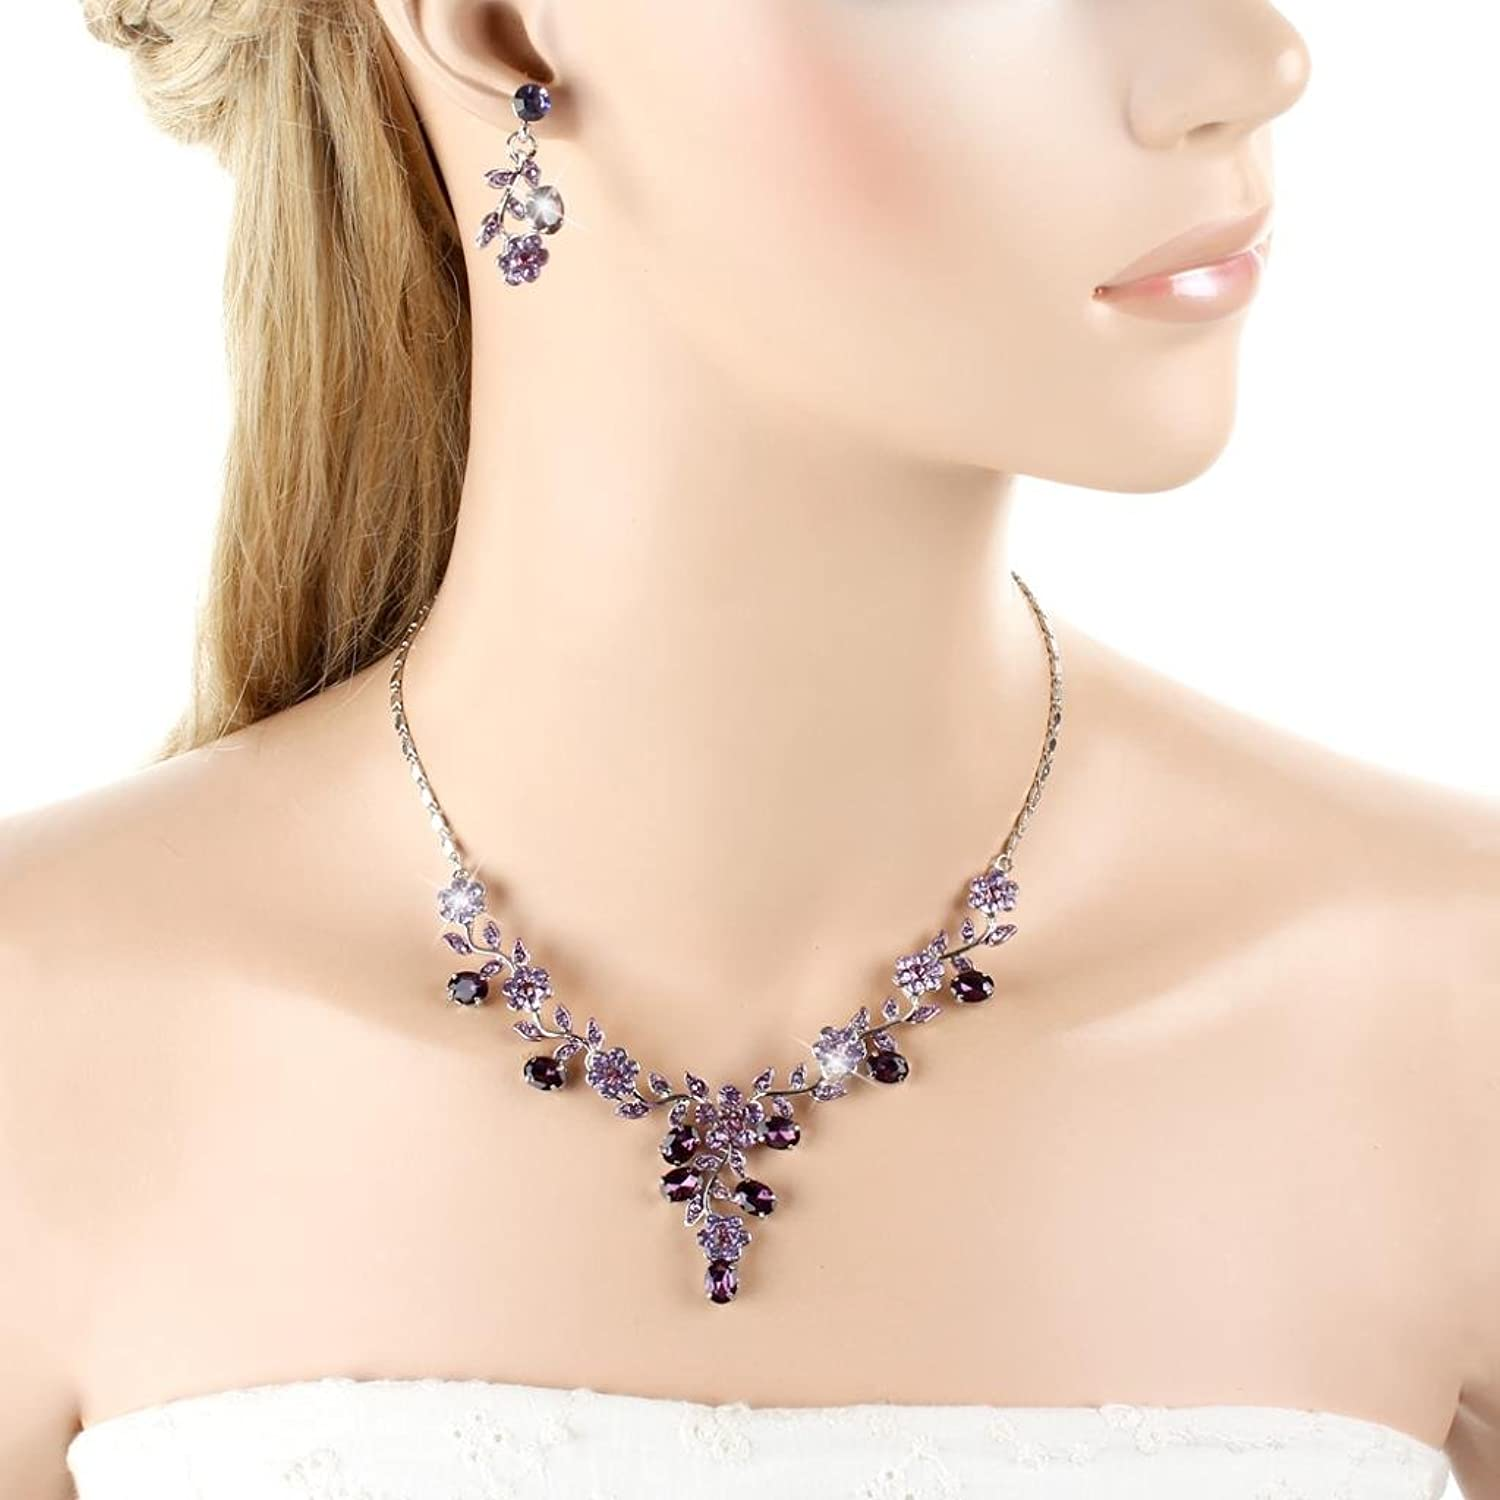 Vintage Style Jewelry, Retro Jewelry EVER FAITH Flower Leaf Necklace Earrings Set Austrian Crystal $20.99 AT vintagedancer.com